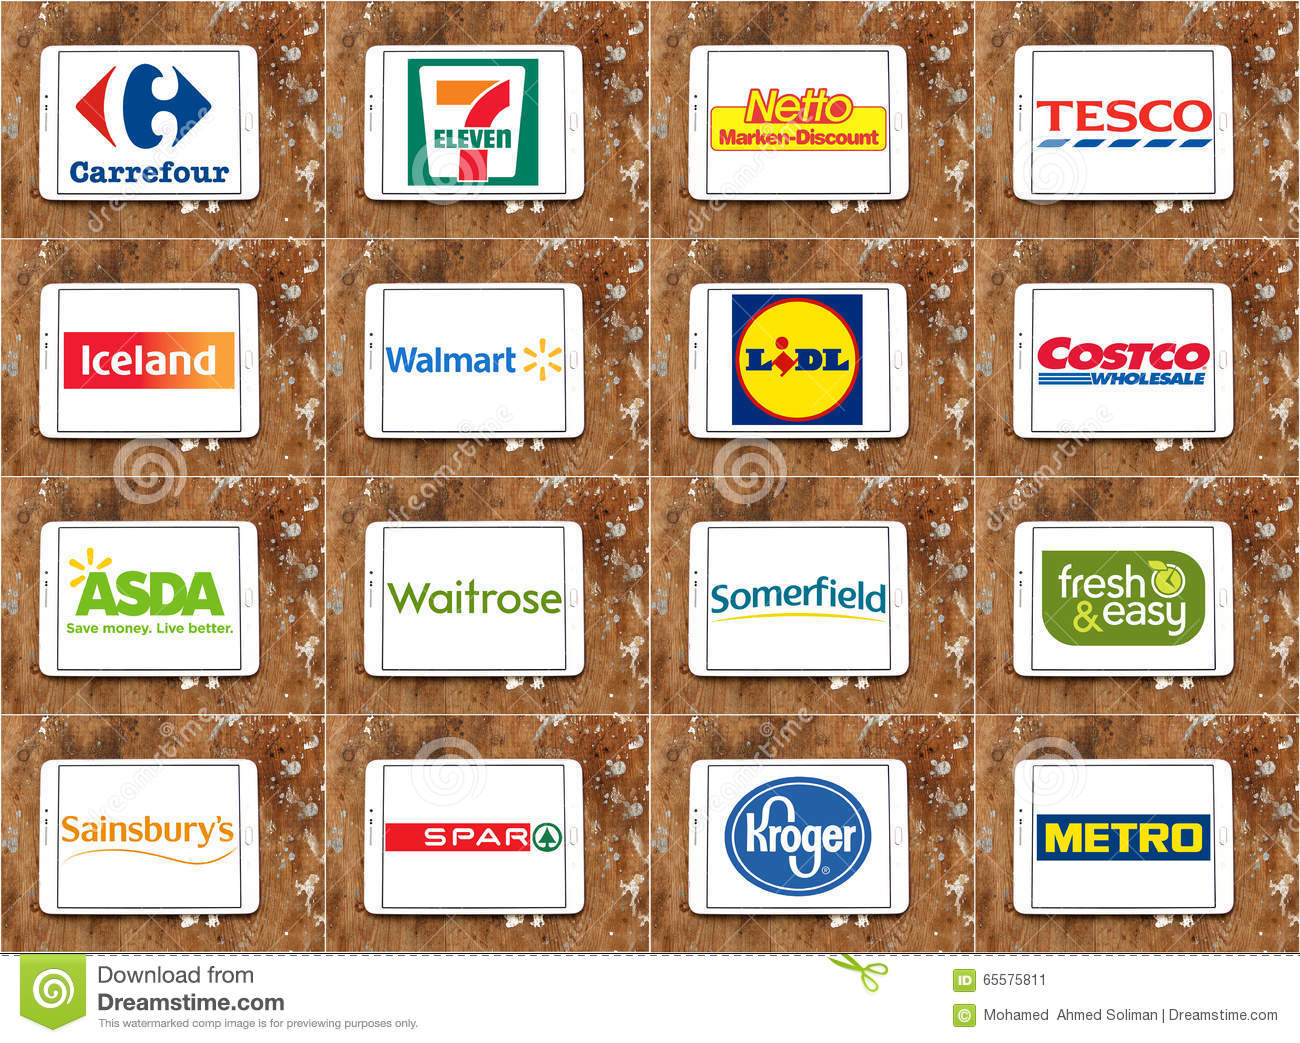 Brands and logos of top famous supermarket chains and retail